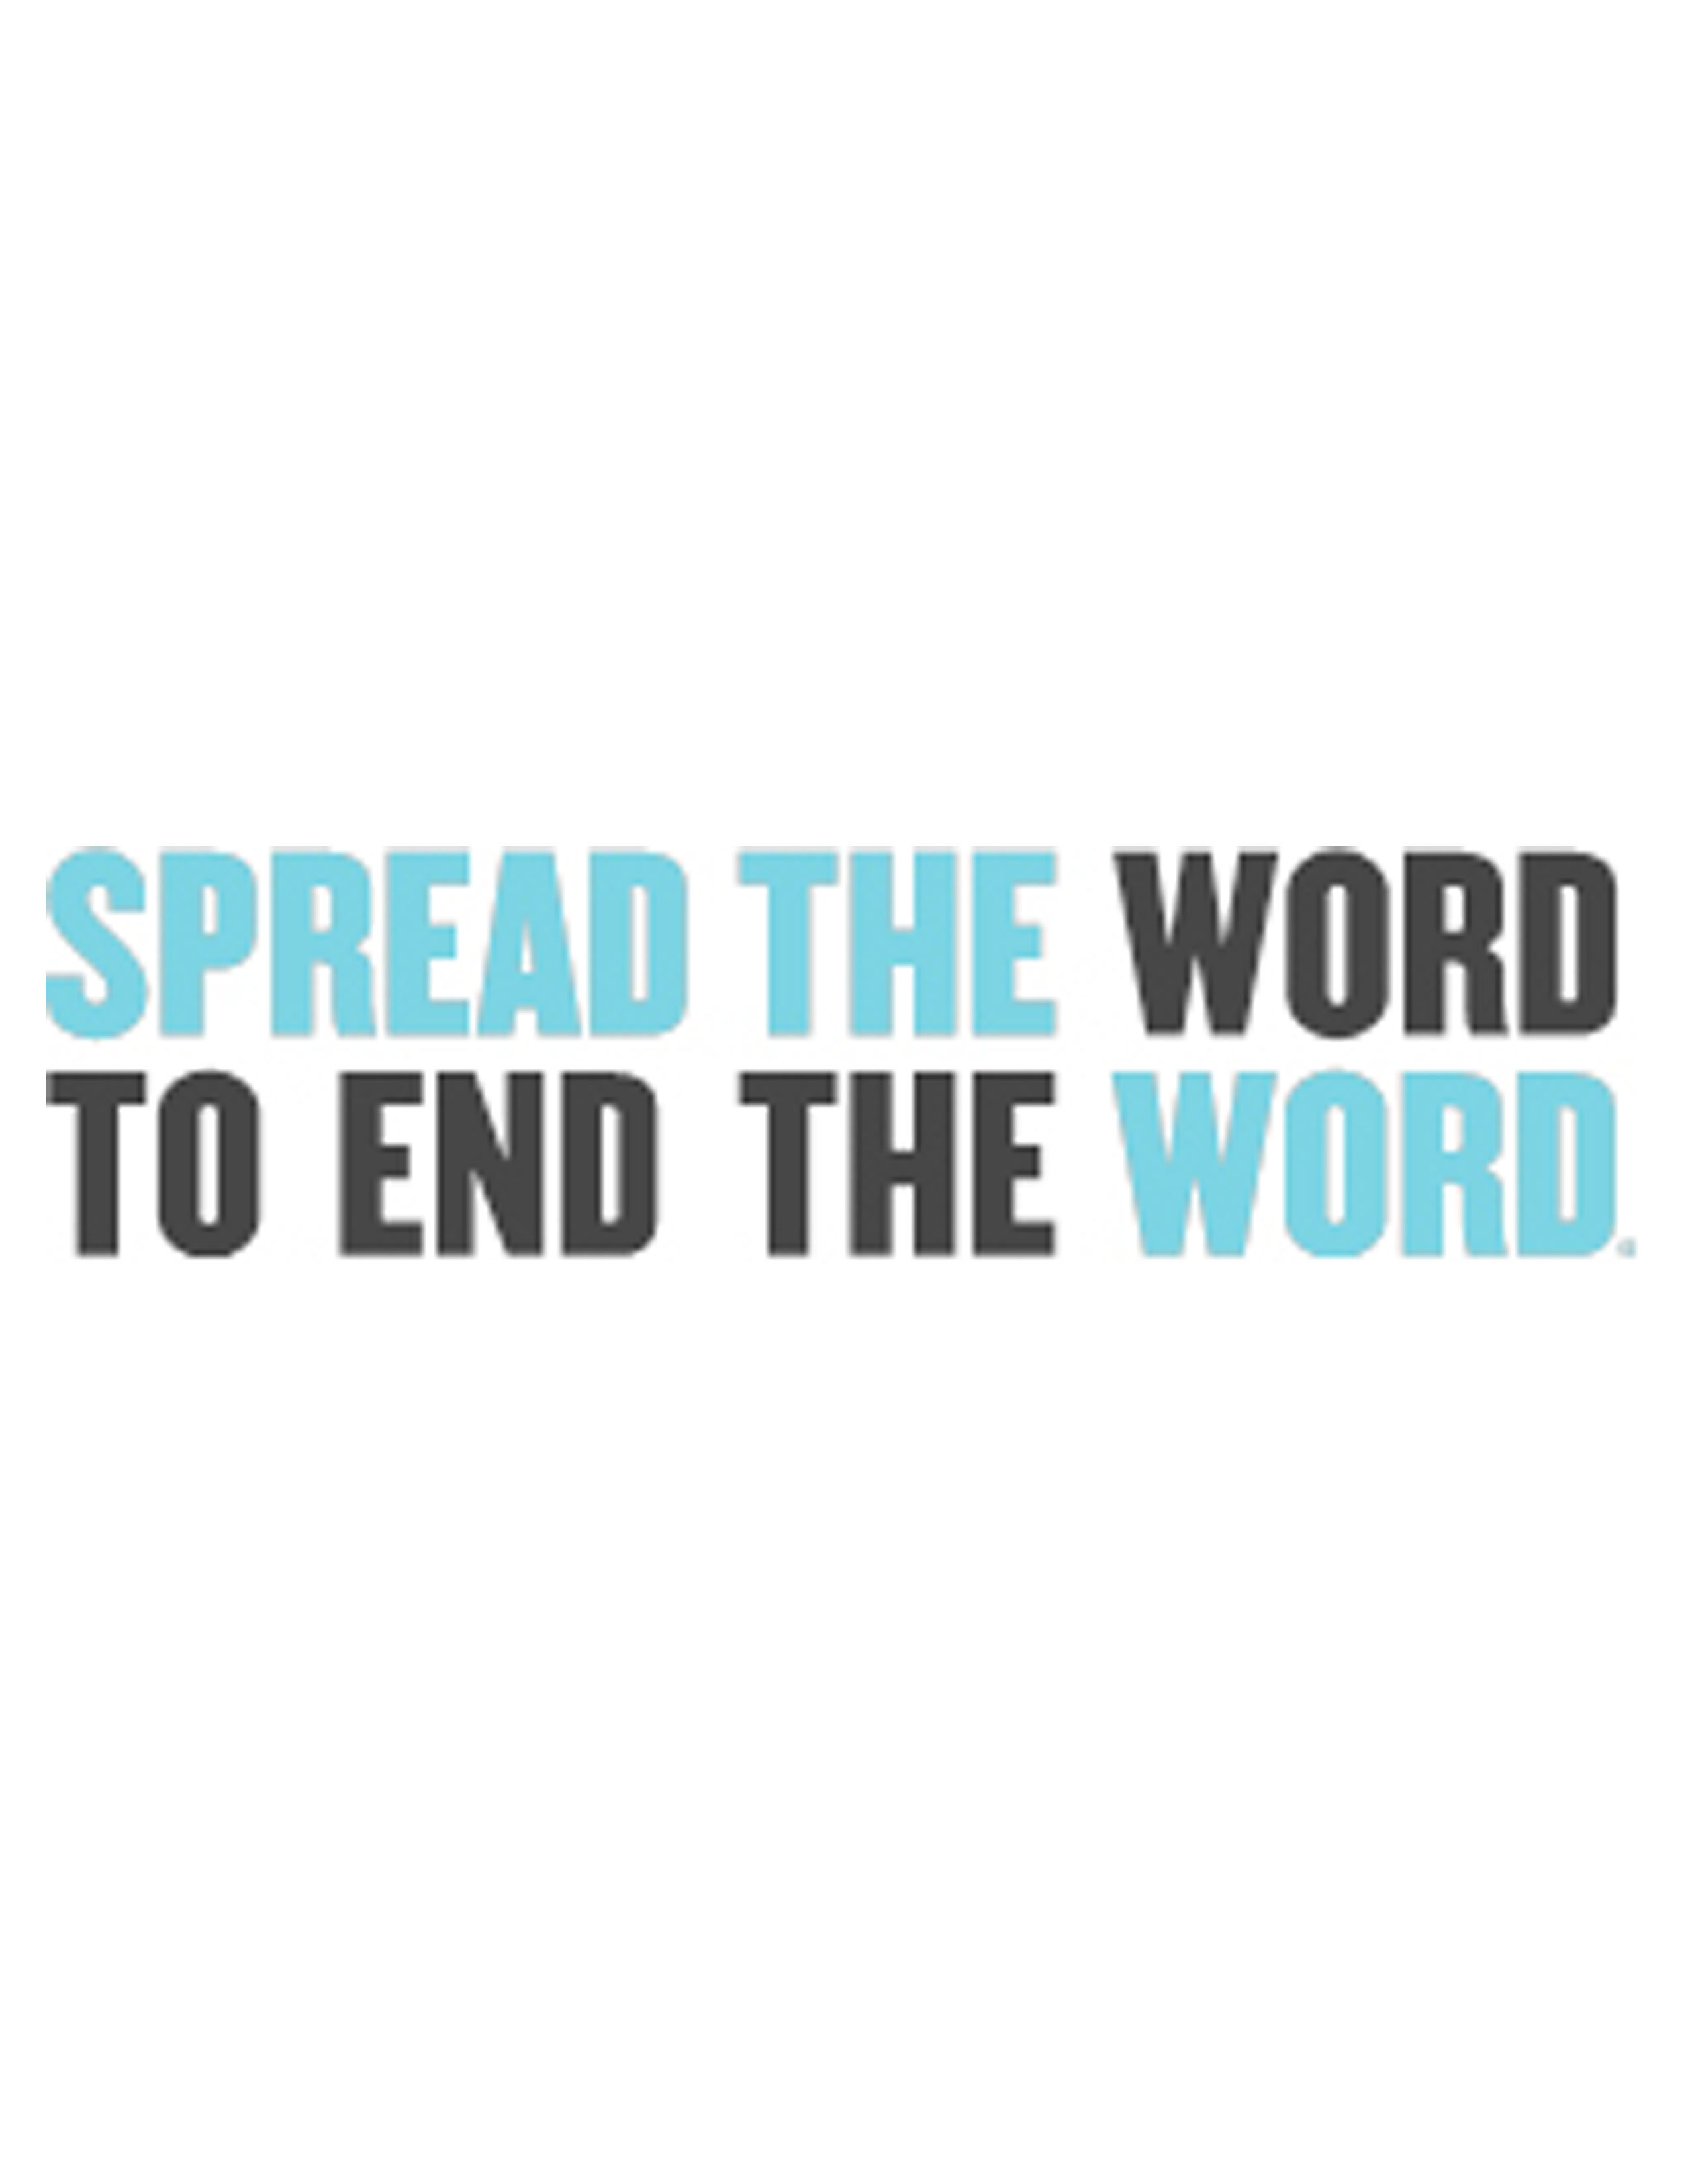 Shred the R Word Initiative!